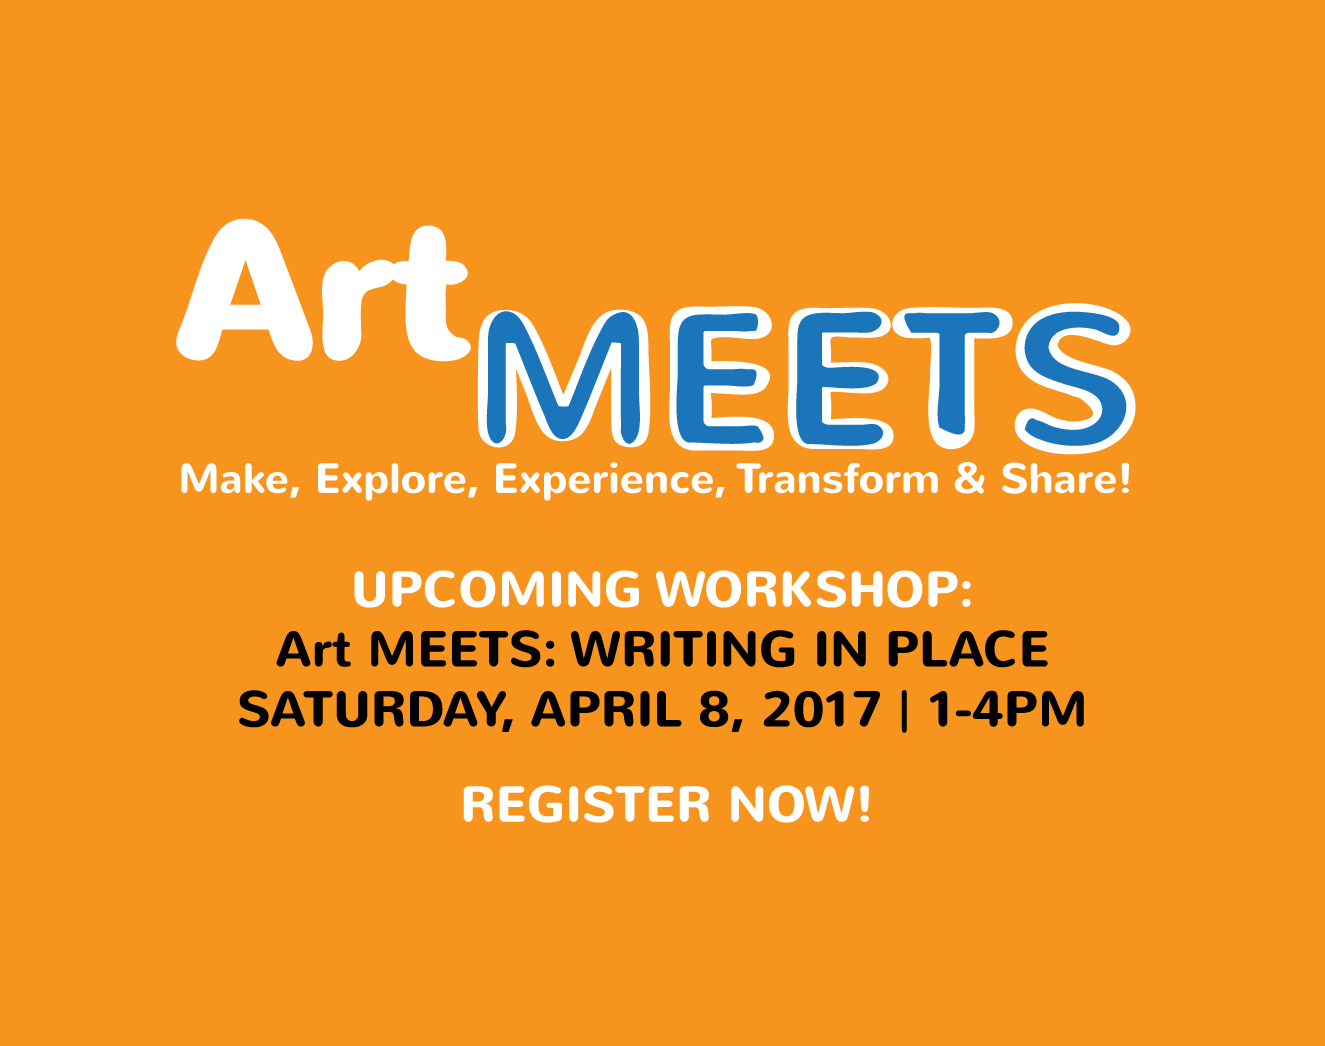 Art MEETS: Writing In Place